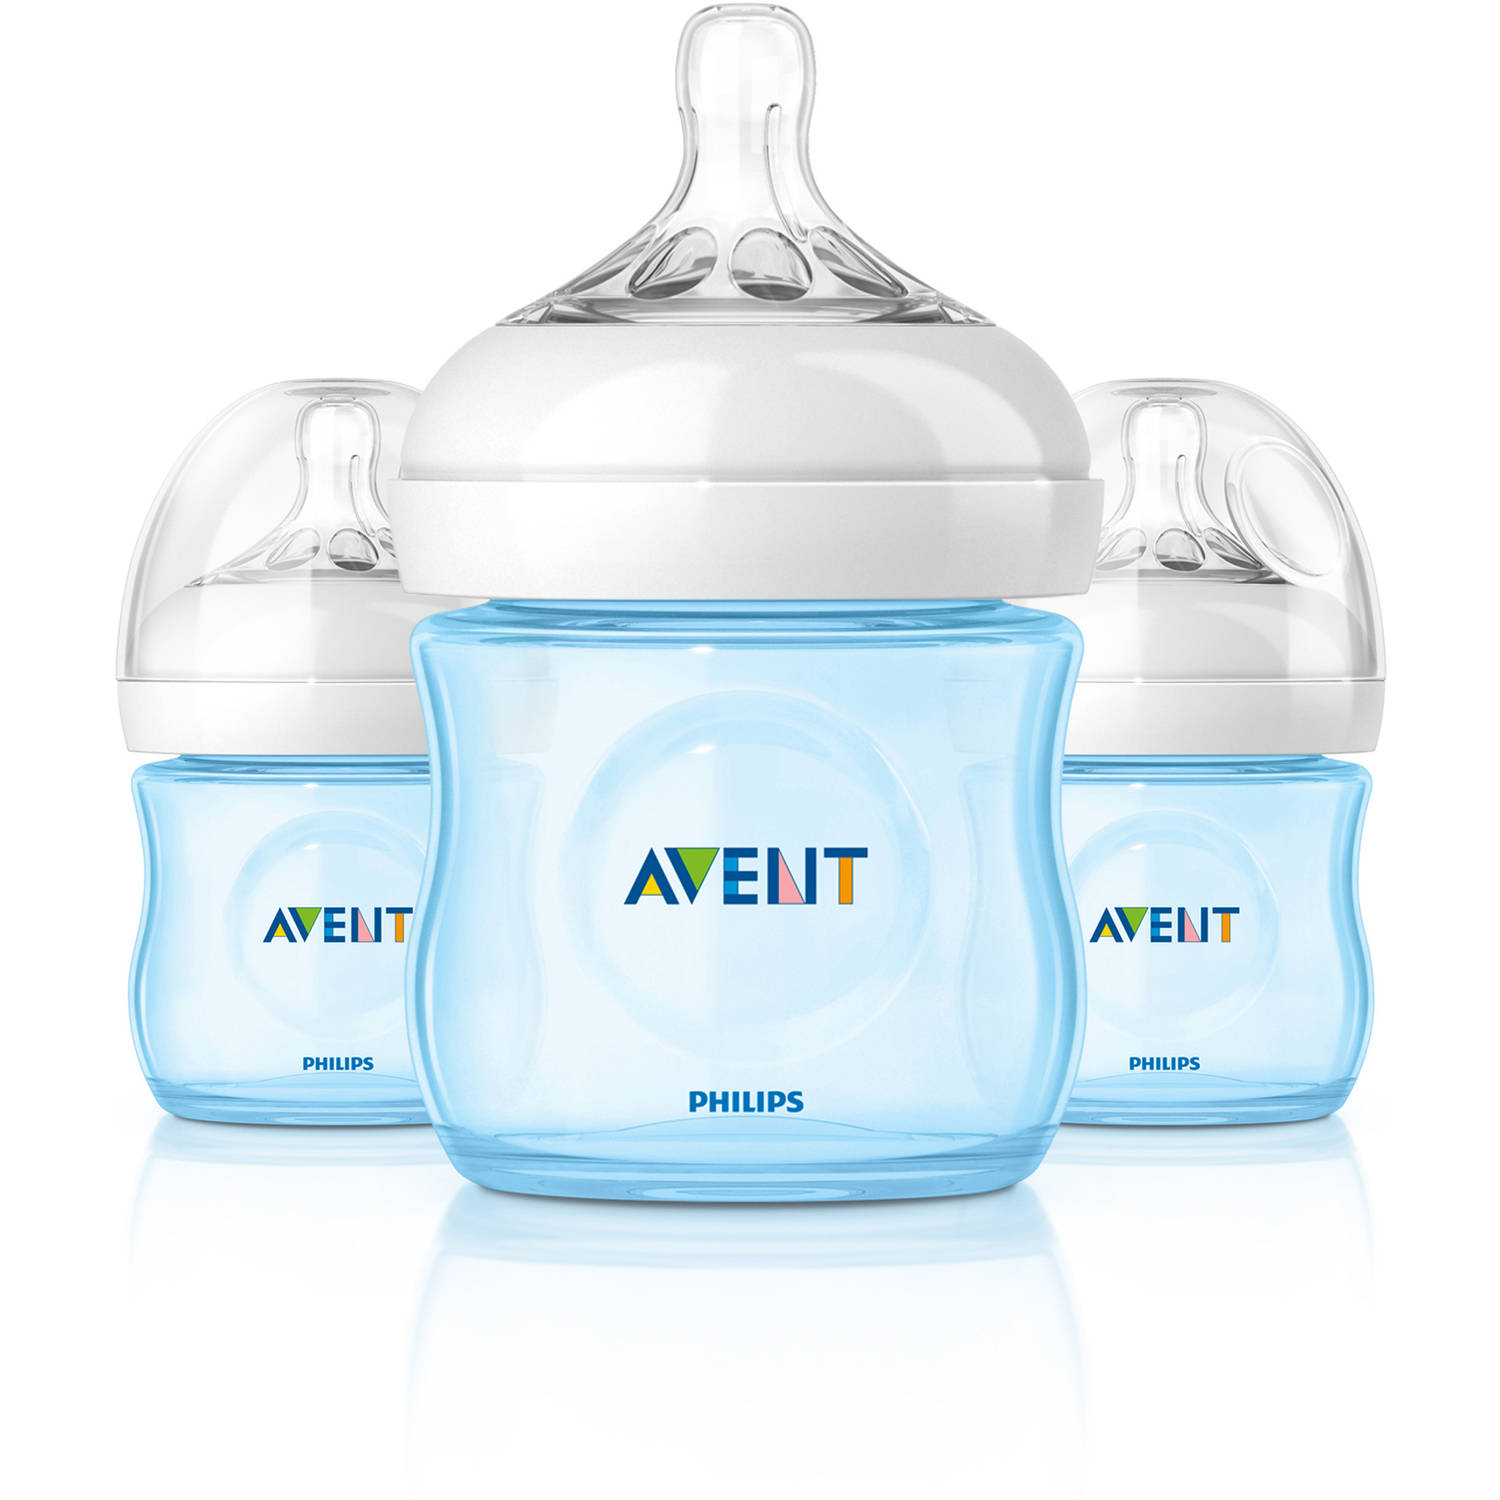 Philips Avent BPA Free Natural Blue Baby Bottles, 4 Ounce, 3 Pack